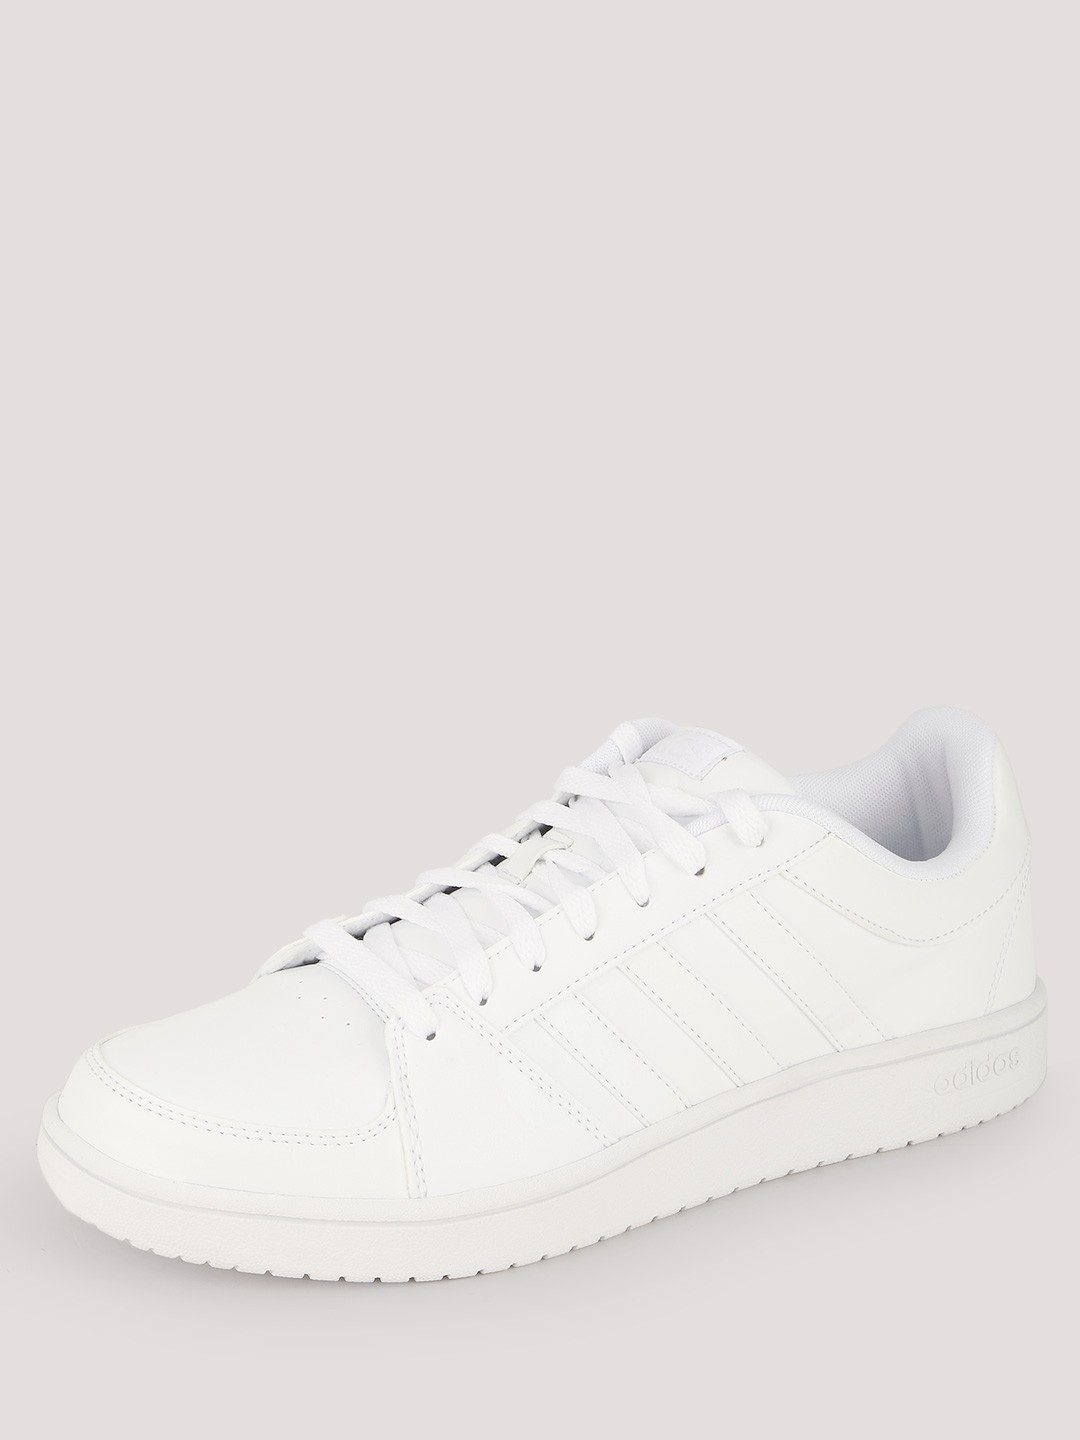 Adidas Neo Hoops White